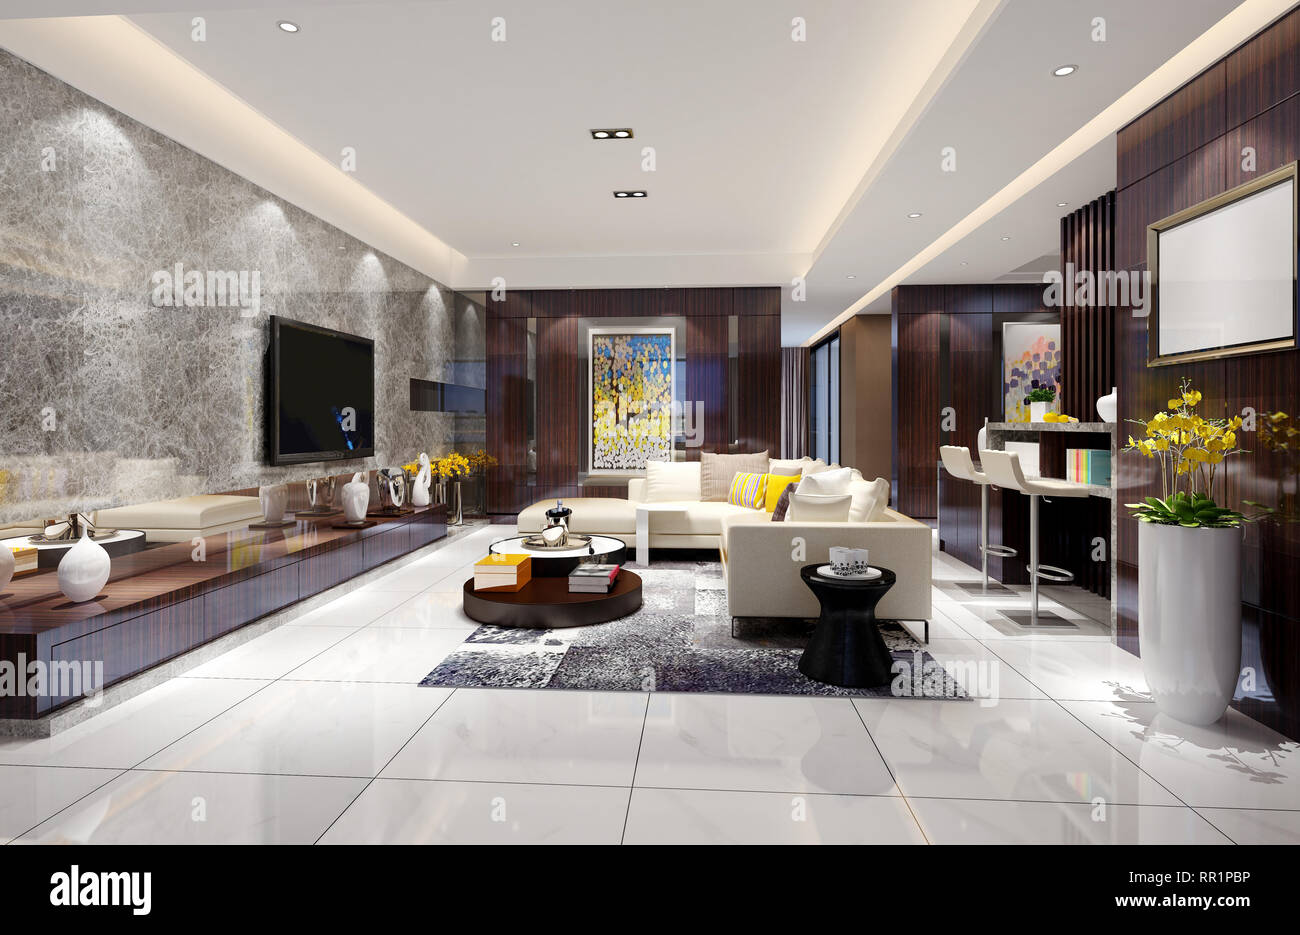 3d Render Of Home Interior Stock Photo 237911402 Alamy